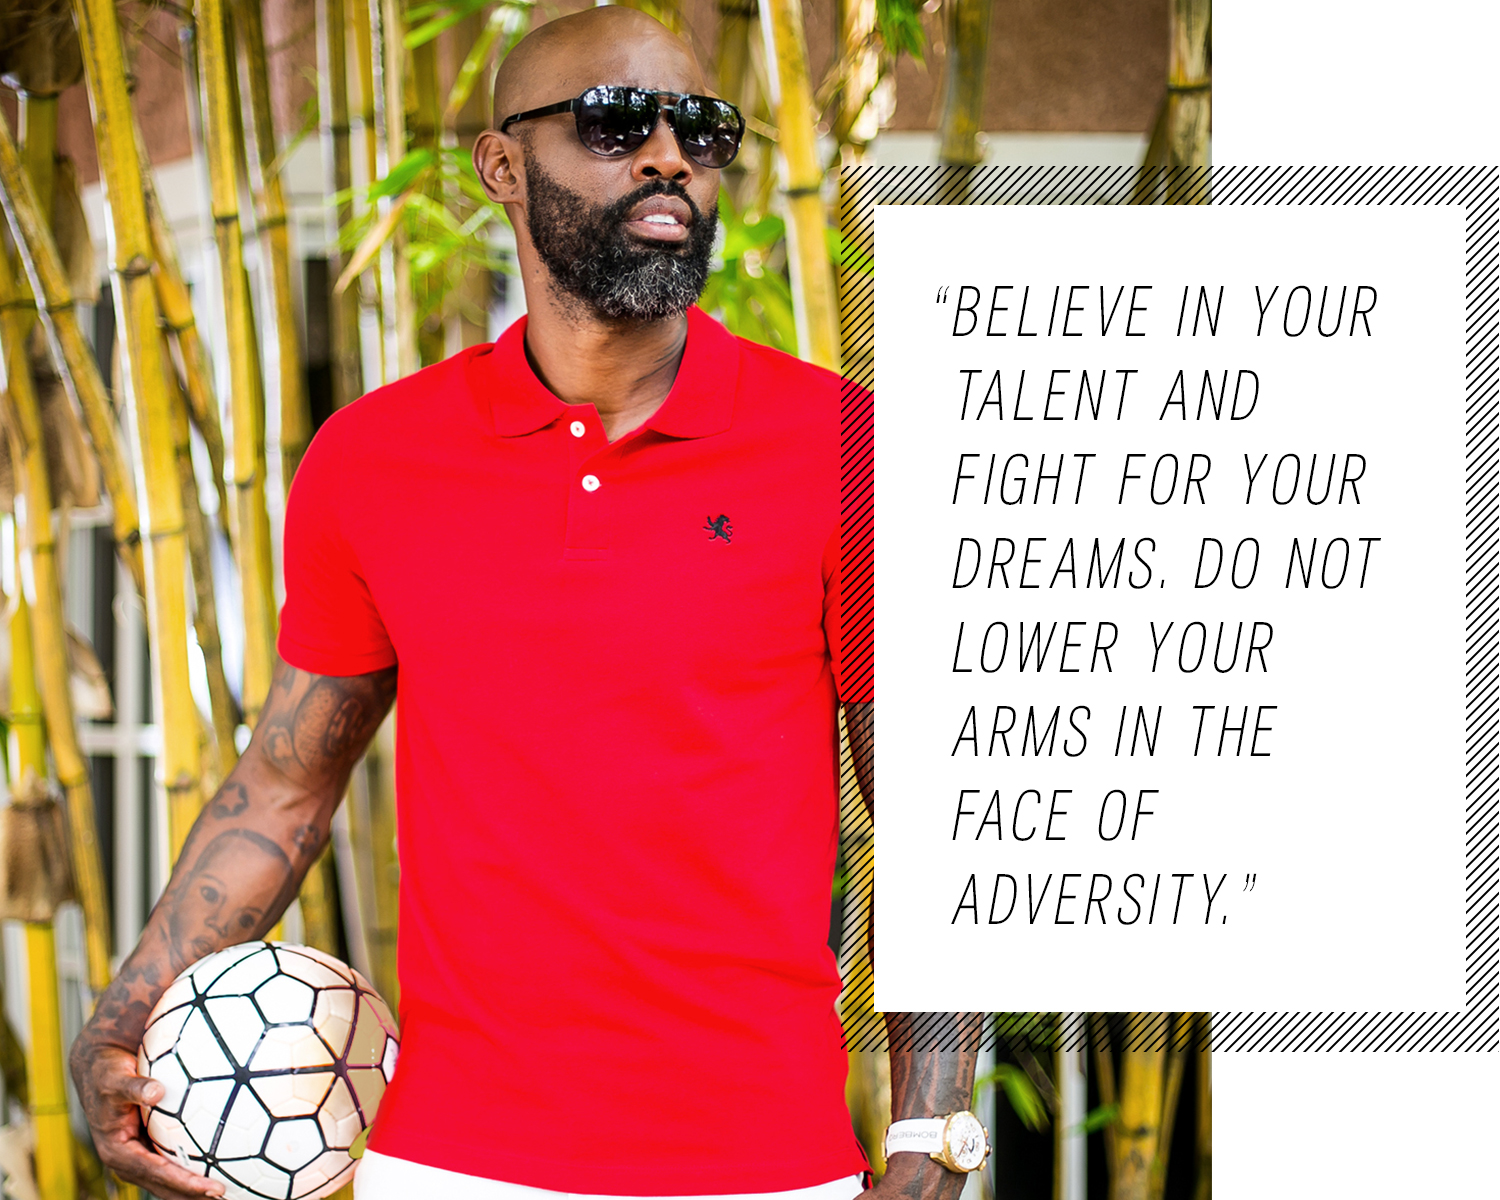 believe-in-your-talent-and-fight-for-your-dreams-do-not-lower-your-arms-in-the-face-of-adversity